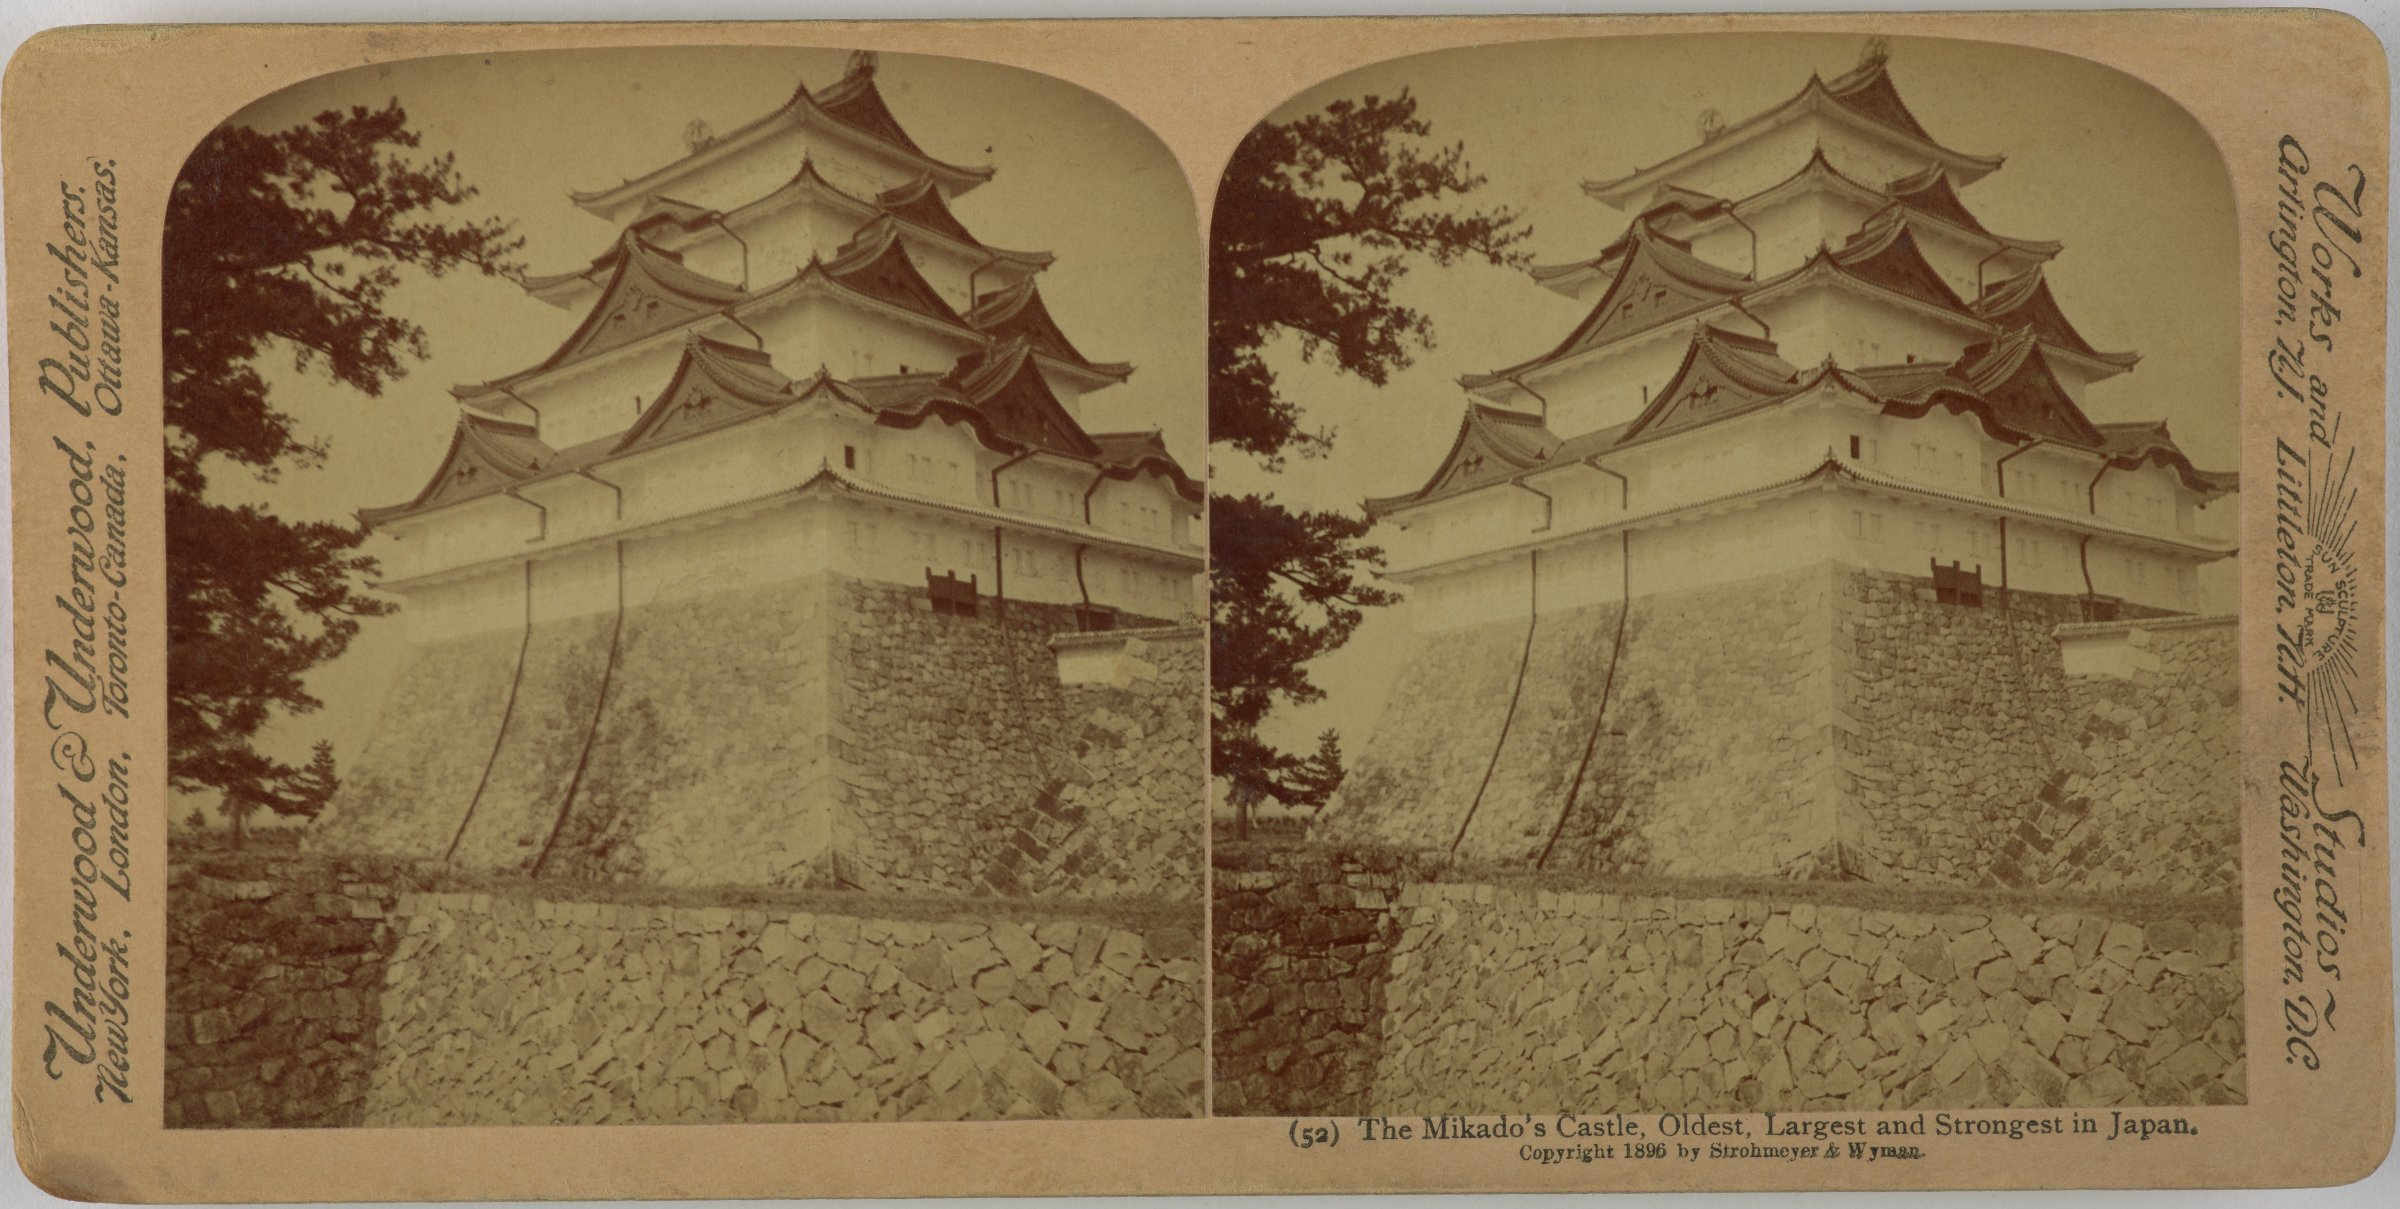 The Mikado's Castle, Oldest, Largest and Strongest in Japan., Underwood & Underwood Publishers, gelatin silver prints mounted on card